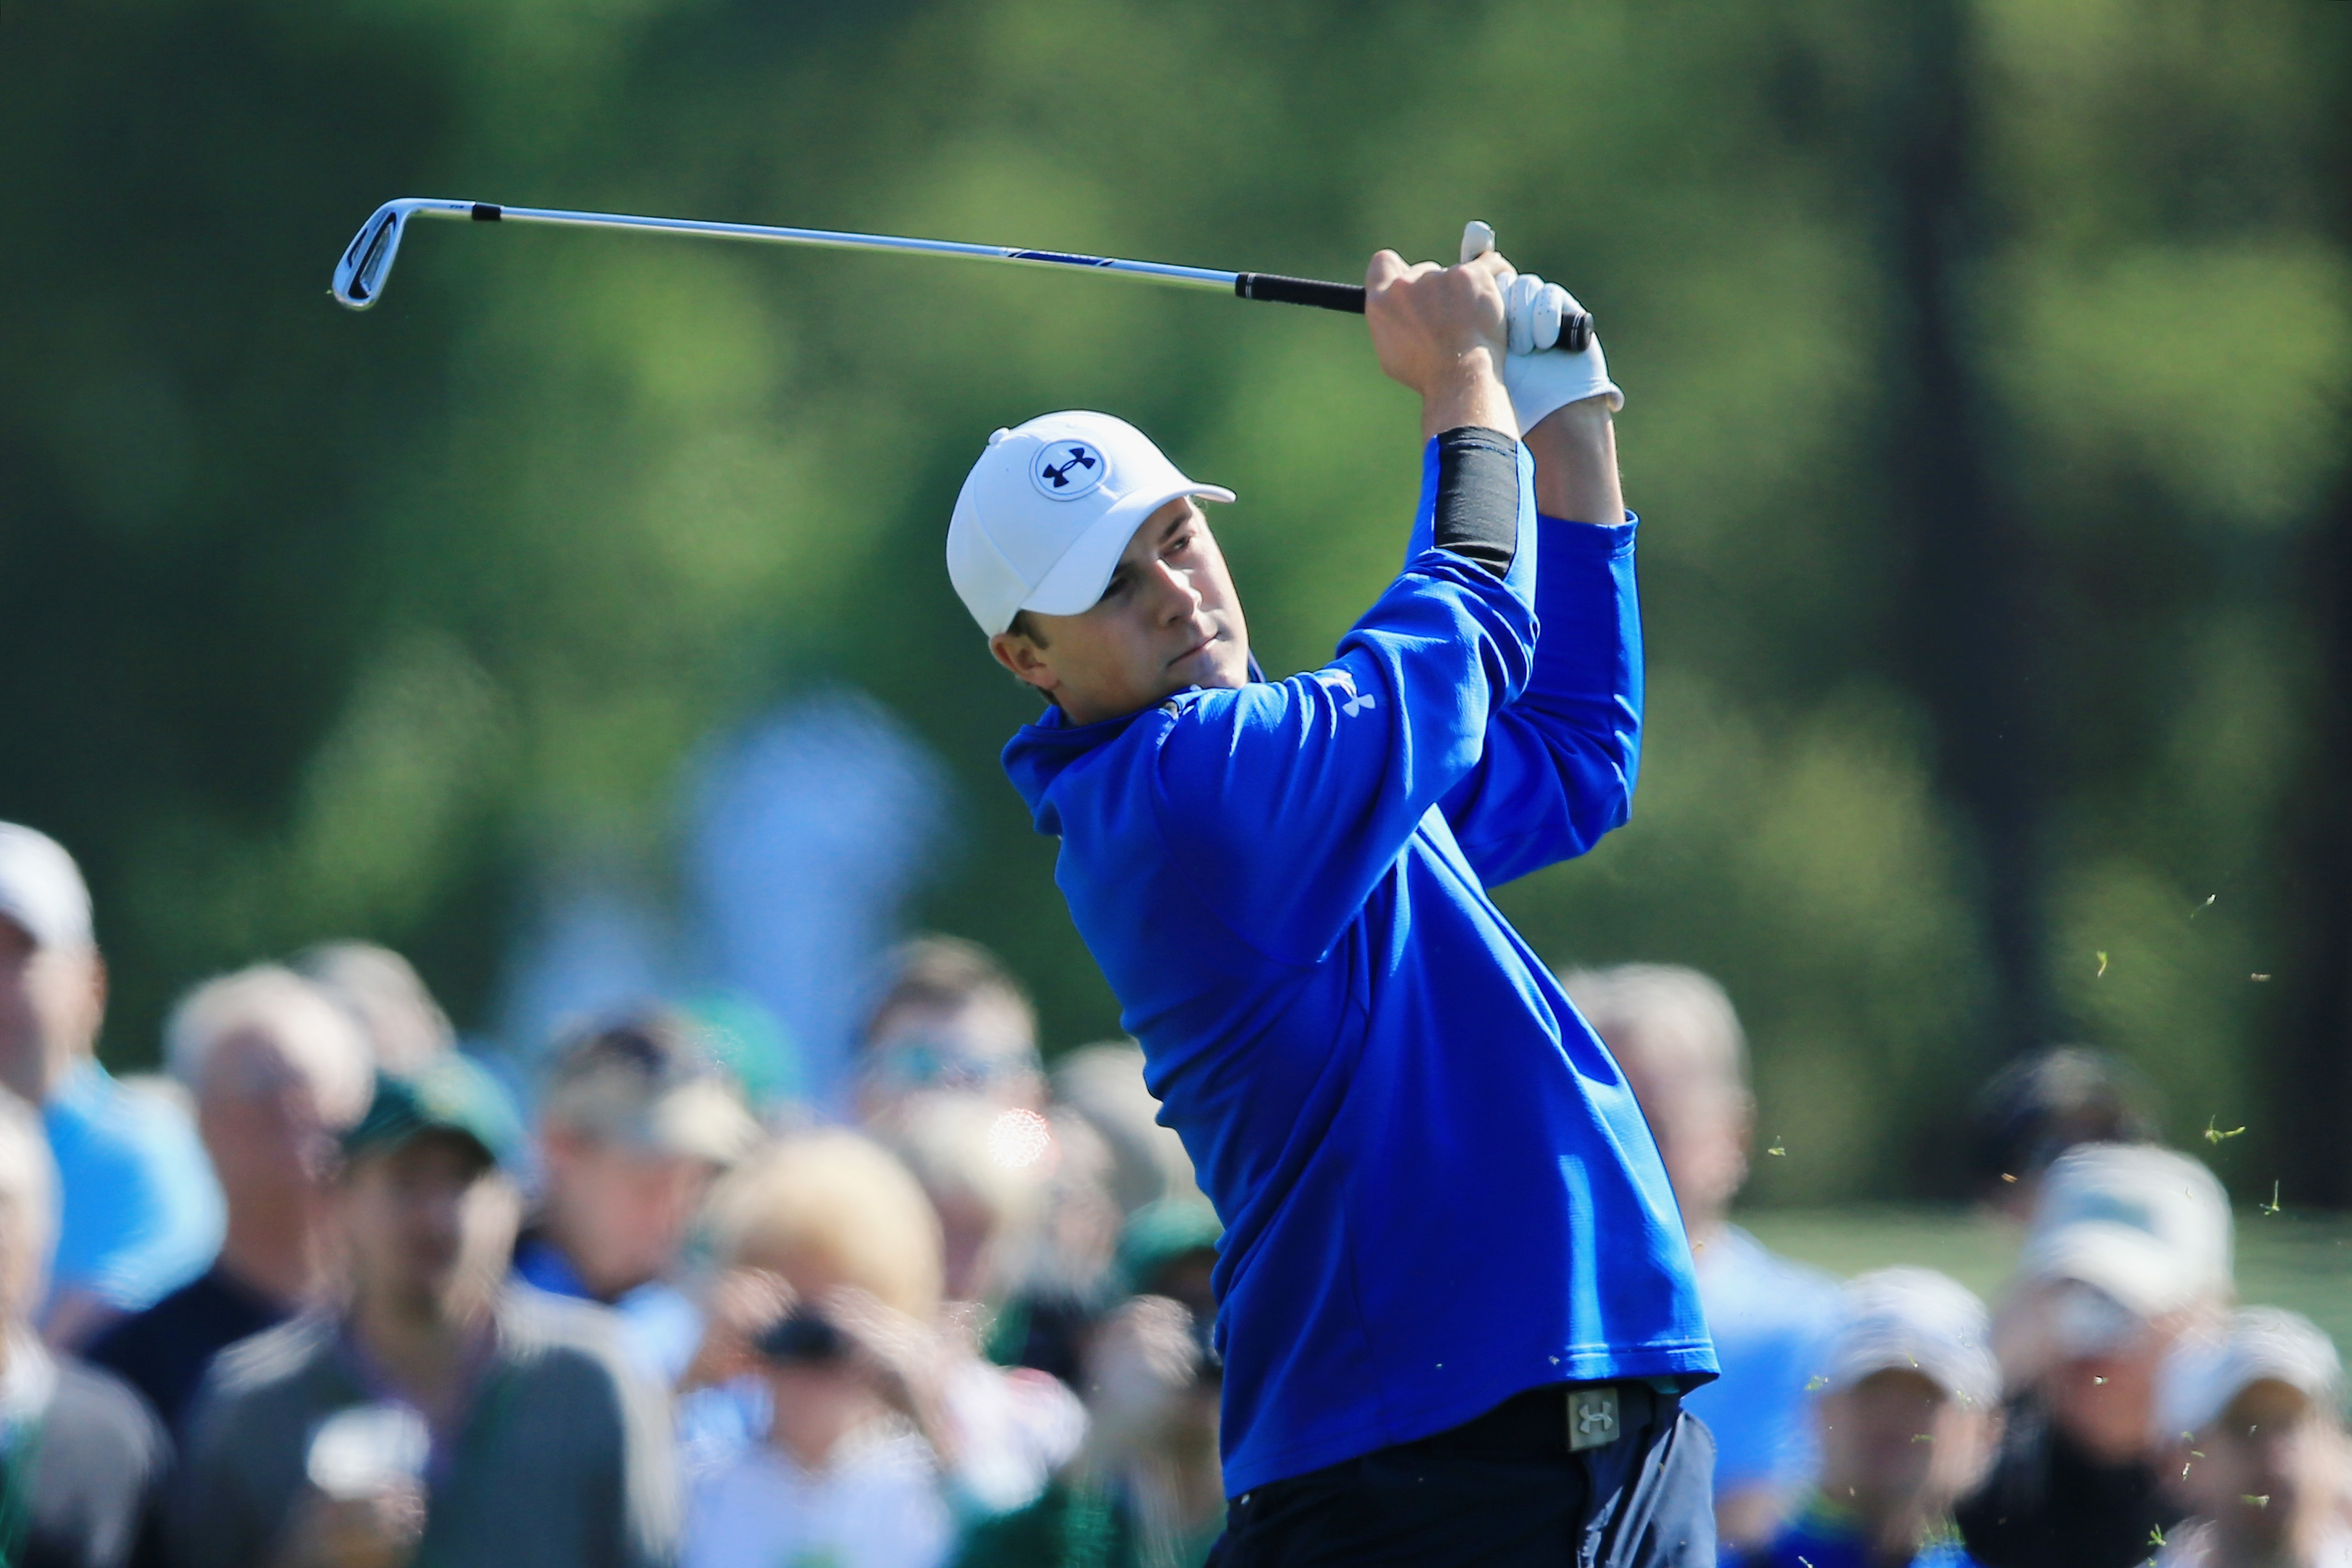 Jordan Spieth is among a group of potential first-time winners in the 78th Masters, which begins today at Augusta National.